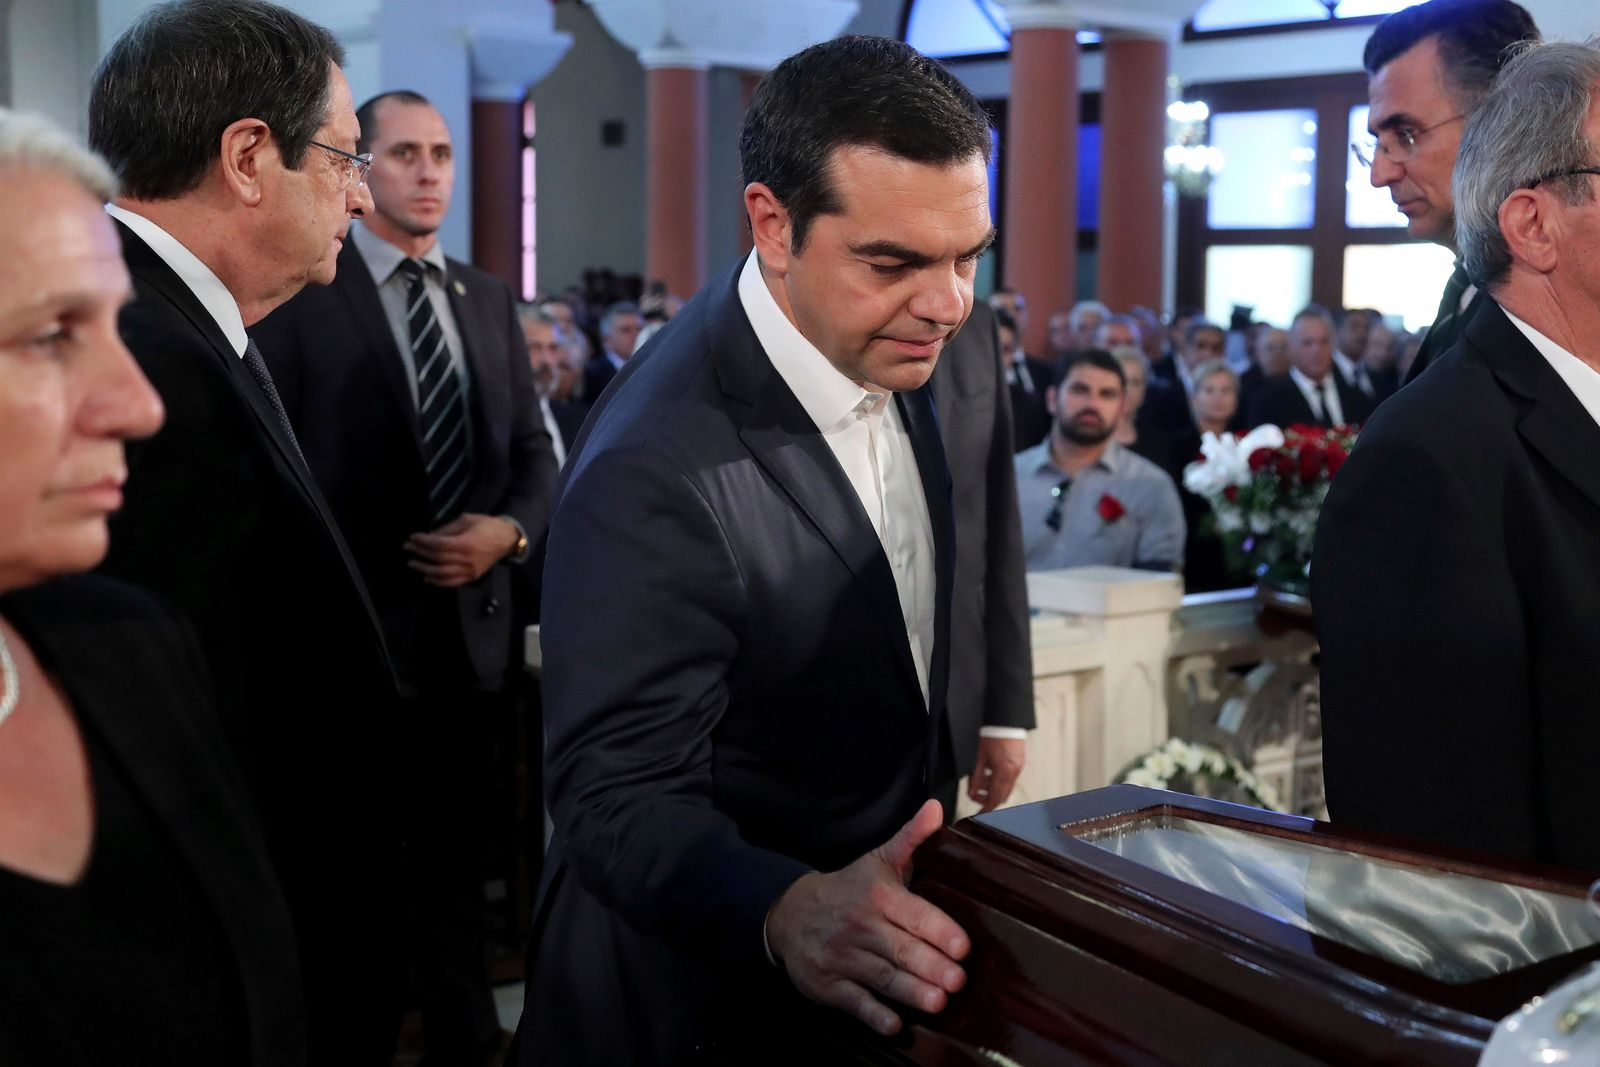 Greece's Prime minister Alexis Tsipras touches the coffin of the former Cyprus' President Dimitris Christofias during his state funeral at the Orthodox Christian Church of the Lord's Wisdom in capital Nicosia, Cyprus, Tuesday, June 25, 2019. European communist and left-wing party heads and leaders from ethnically split Cyprus' breakaway Turkish Cypriot community were among those attending a funeral service for the country's former president Christofias. (AP Photo/Petros Karadjias)